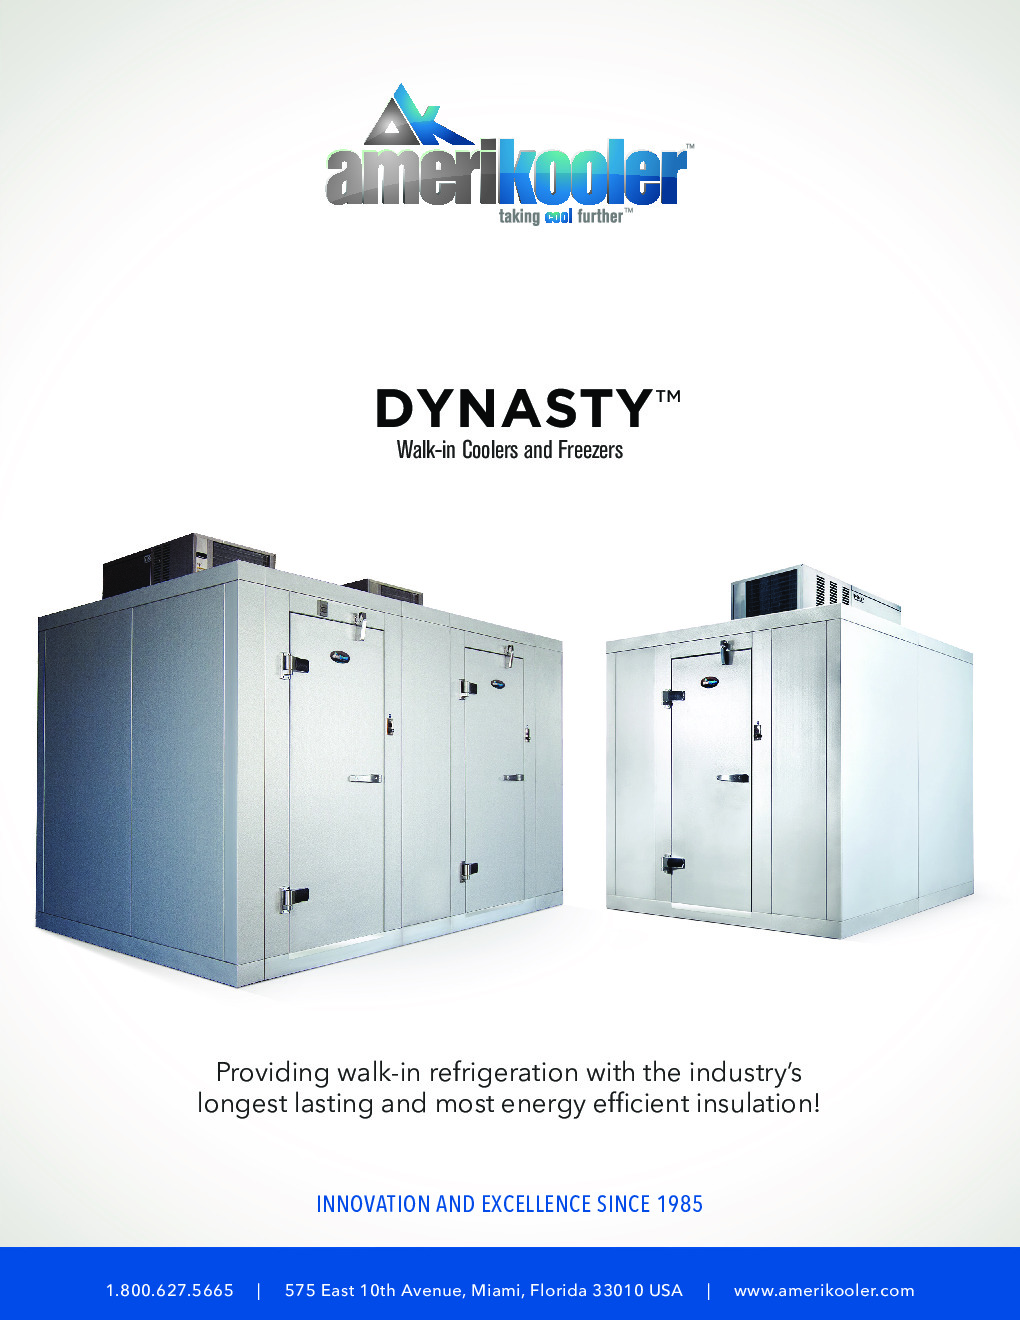 AmeriKooler DW081677N-8/8-SC 8' X 16' Walk-In Cooler, 8' L Cooler without Floor and 8' L Freezer, Self Contained